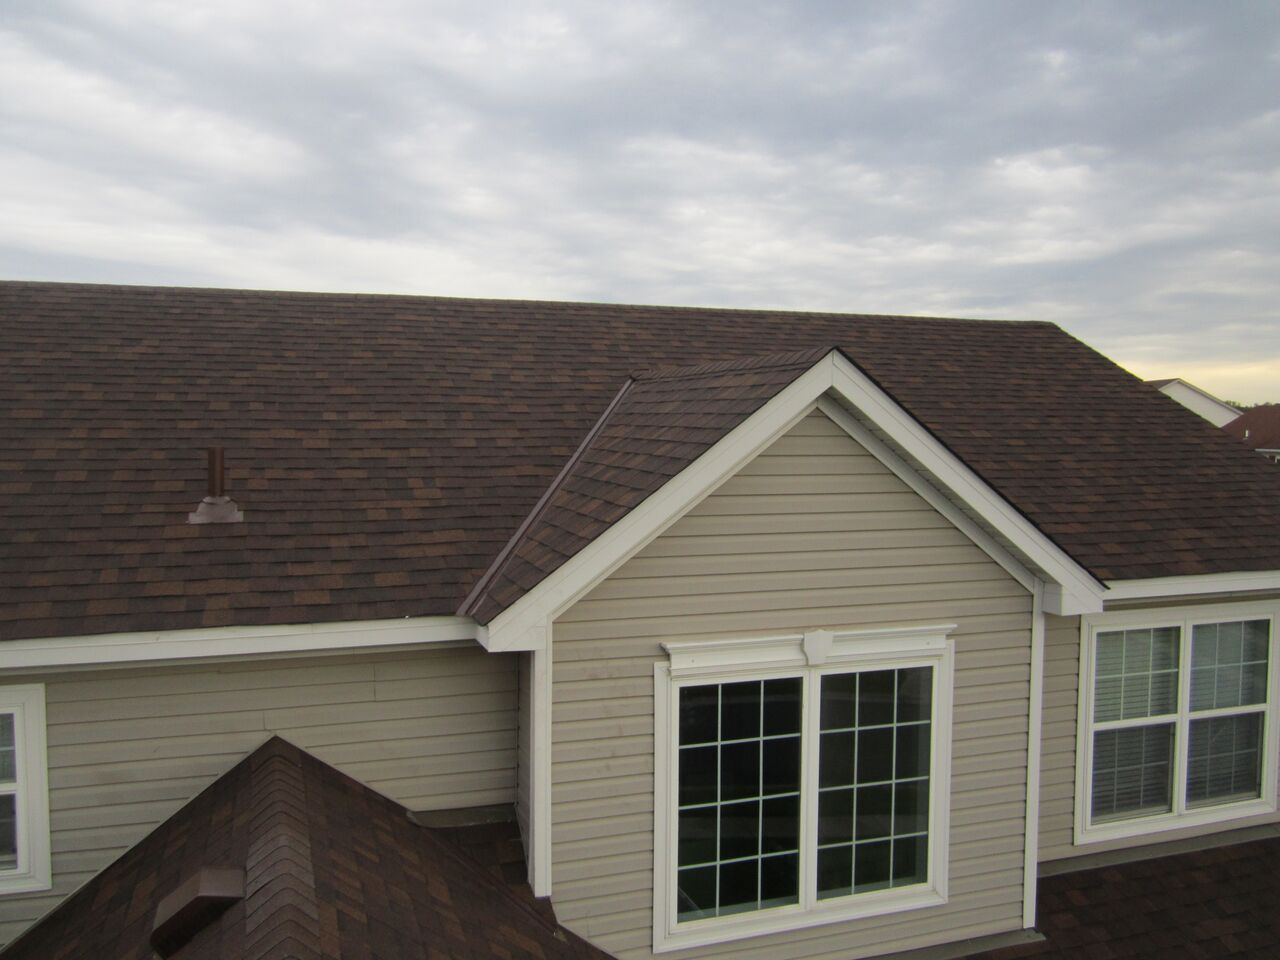 Asphalt Shingle Roofing Windows Gutters Siding Nmc Installation Repair Inspection Roof Repair Roofing Roofing Options